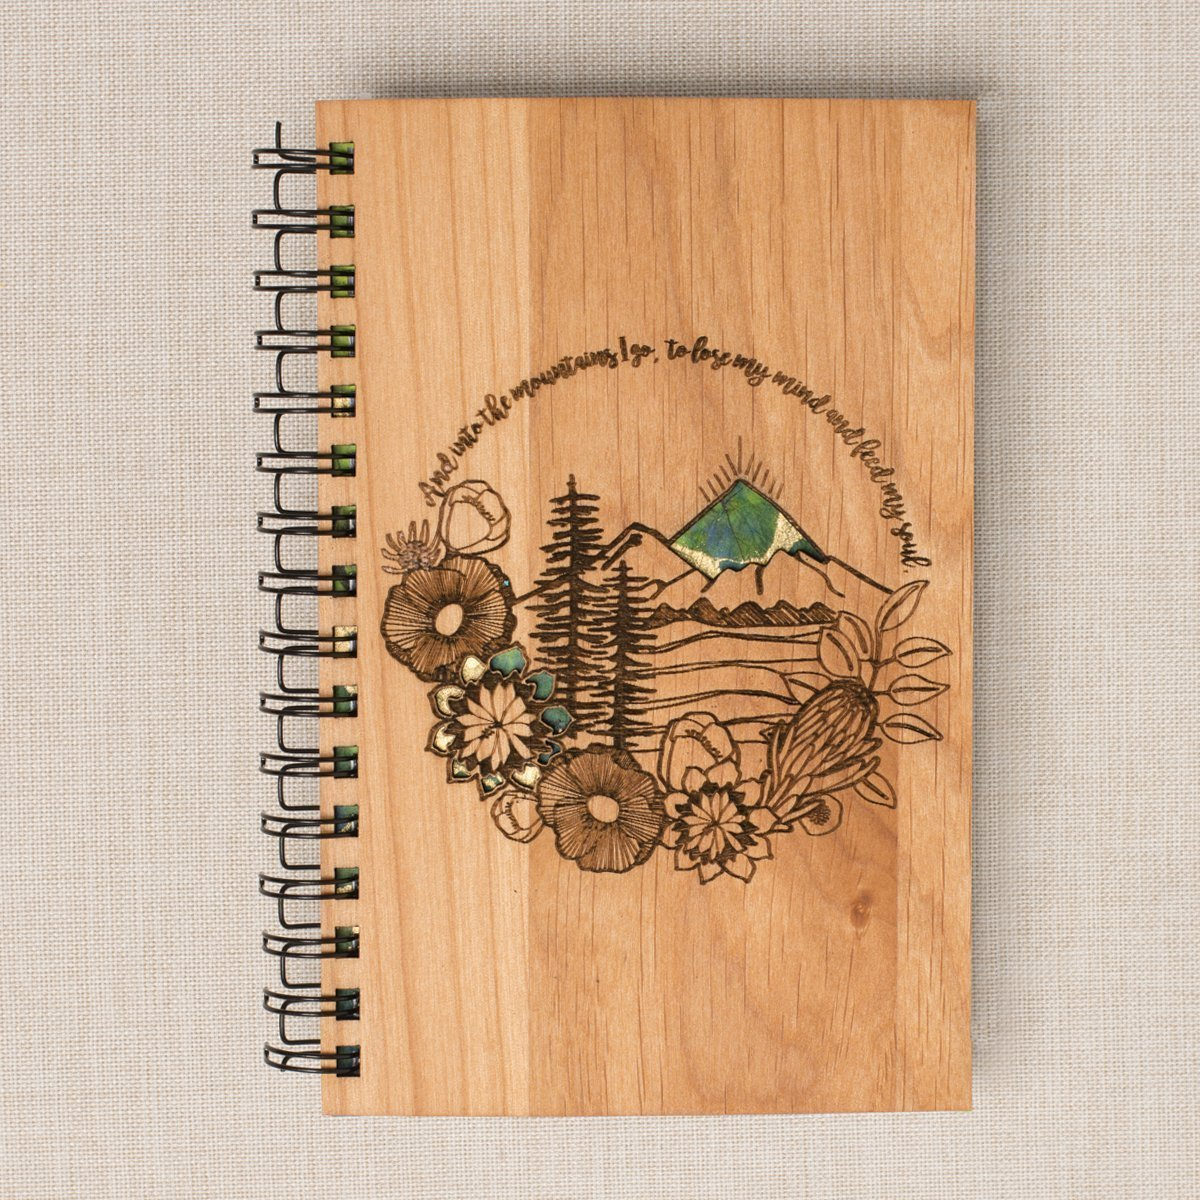 Mountains - Laser Cut Handmade Hand-Bound Wood Bullet Journal. Personalized